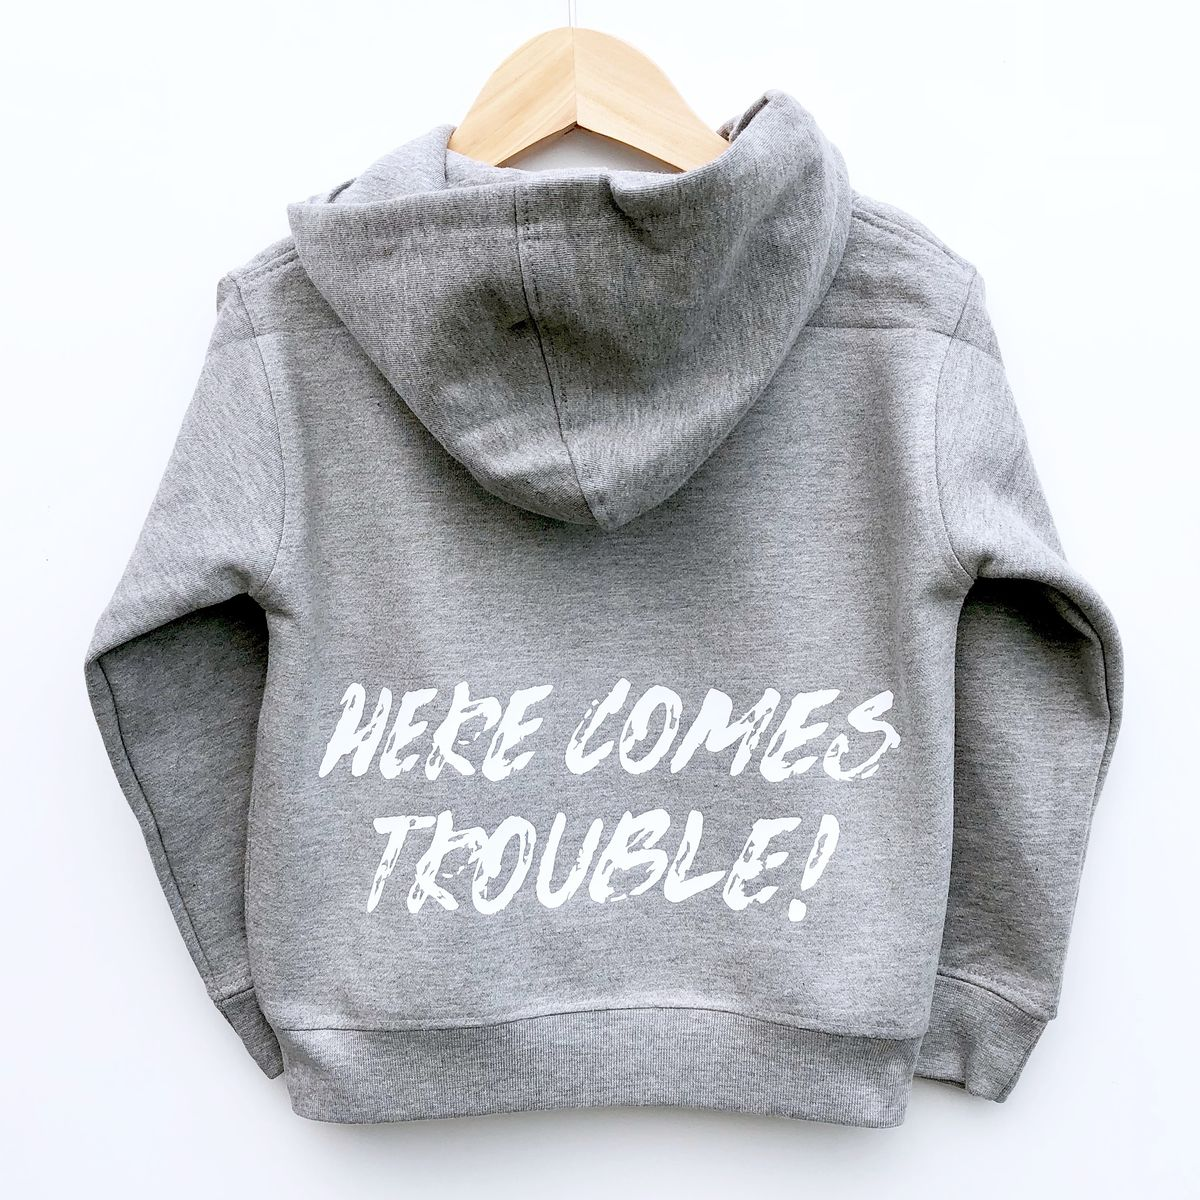 Here Comes Trouble Hoodie - product images  of